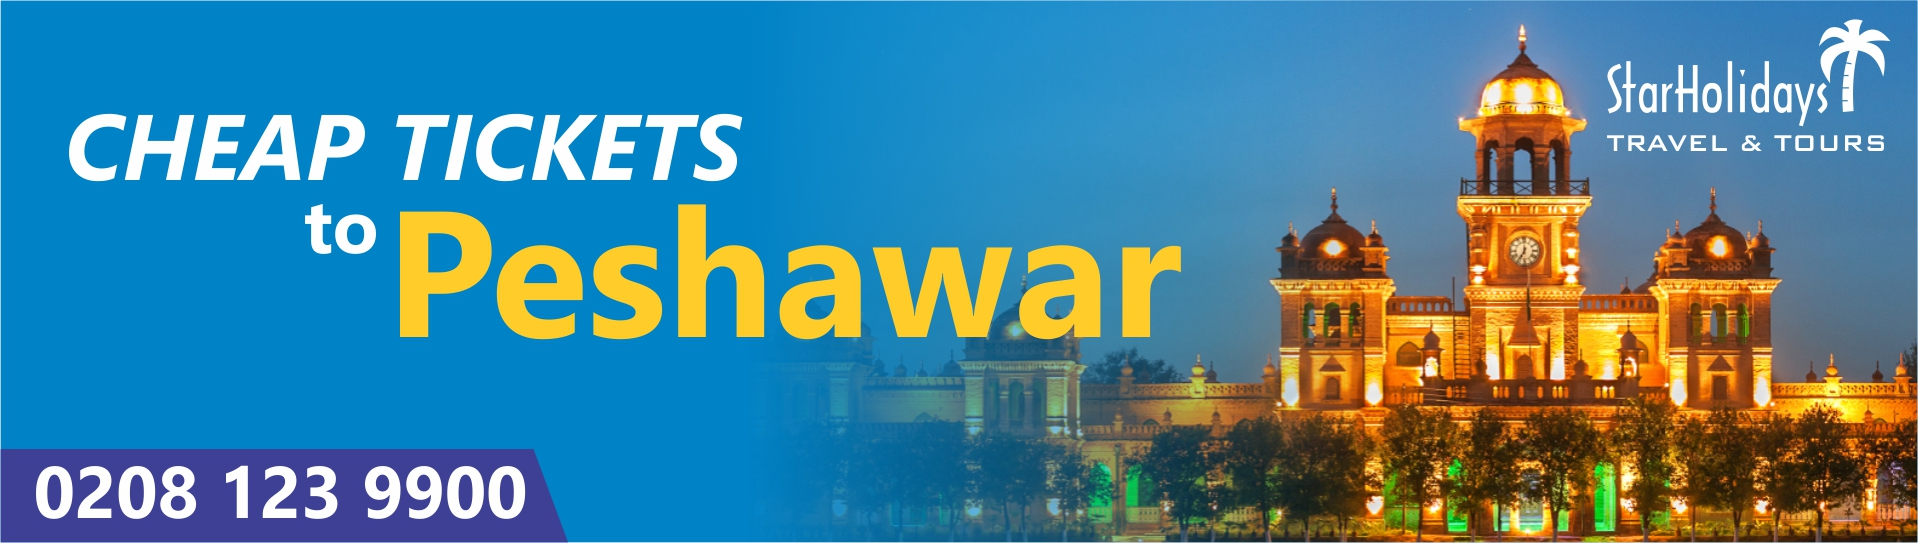 Cheap Tickets to Peshawar